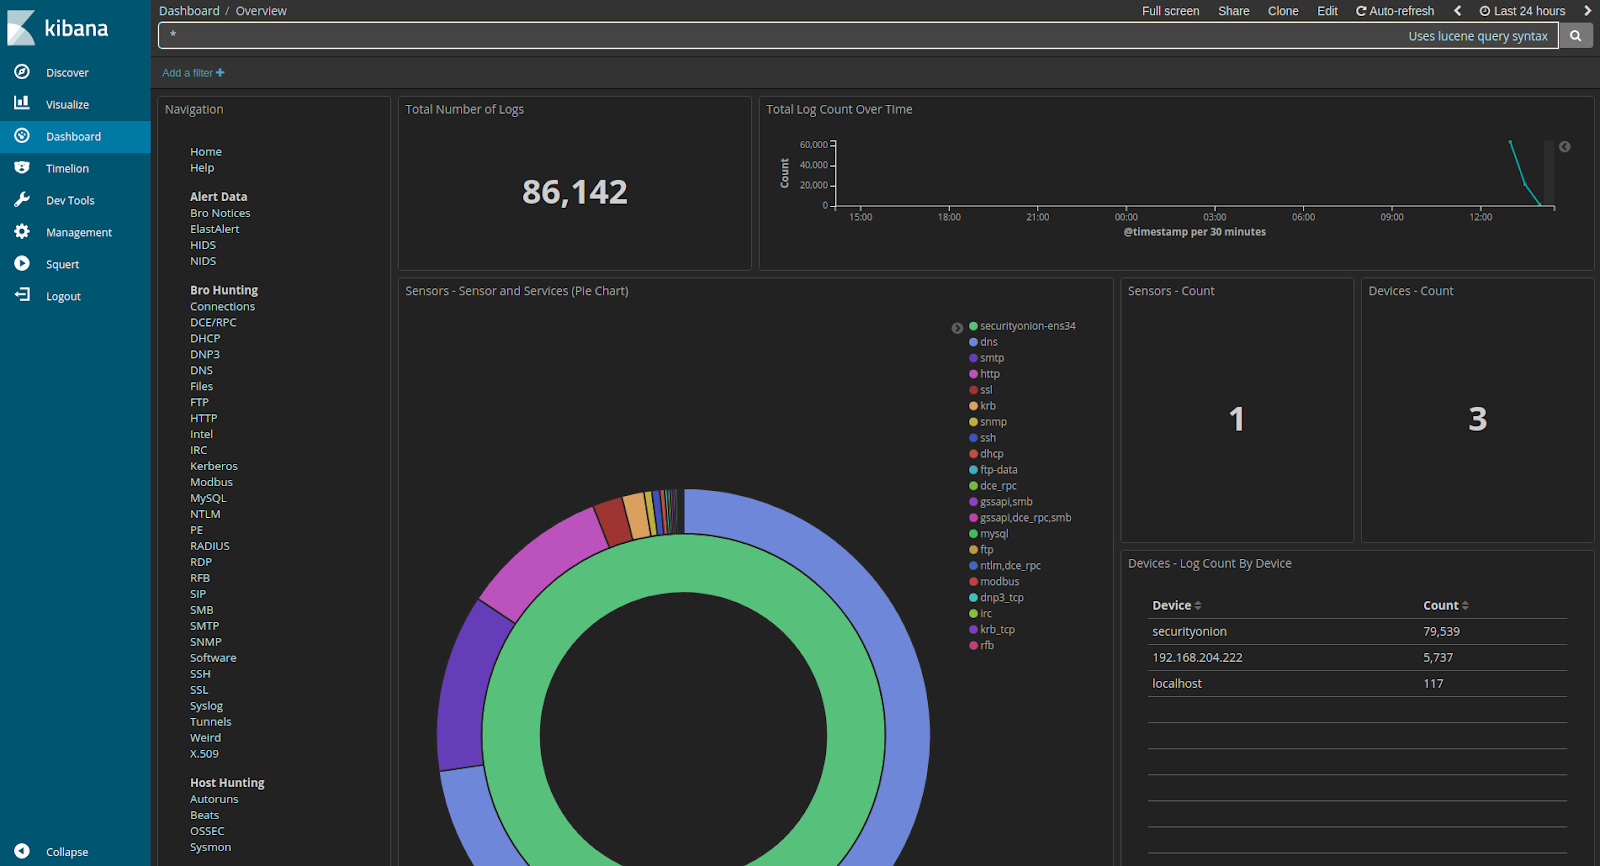 Kibana Overview Dashboard on Security Onion